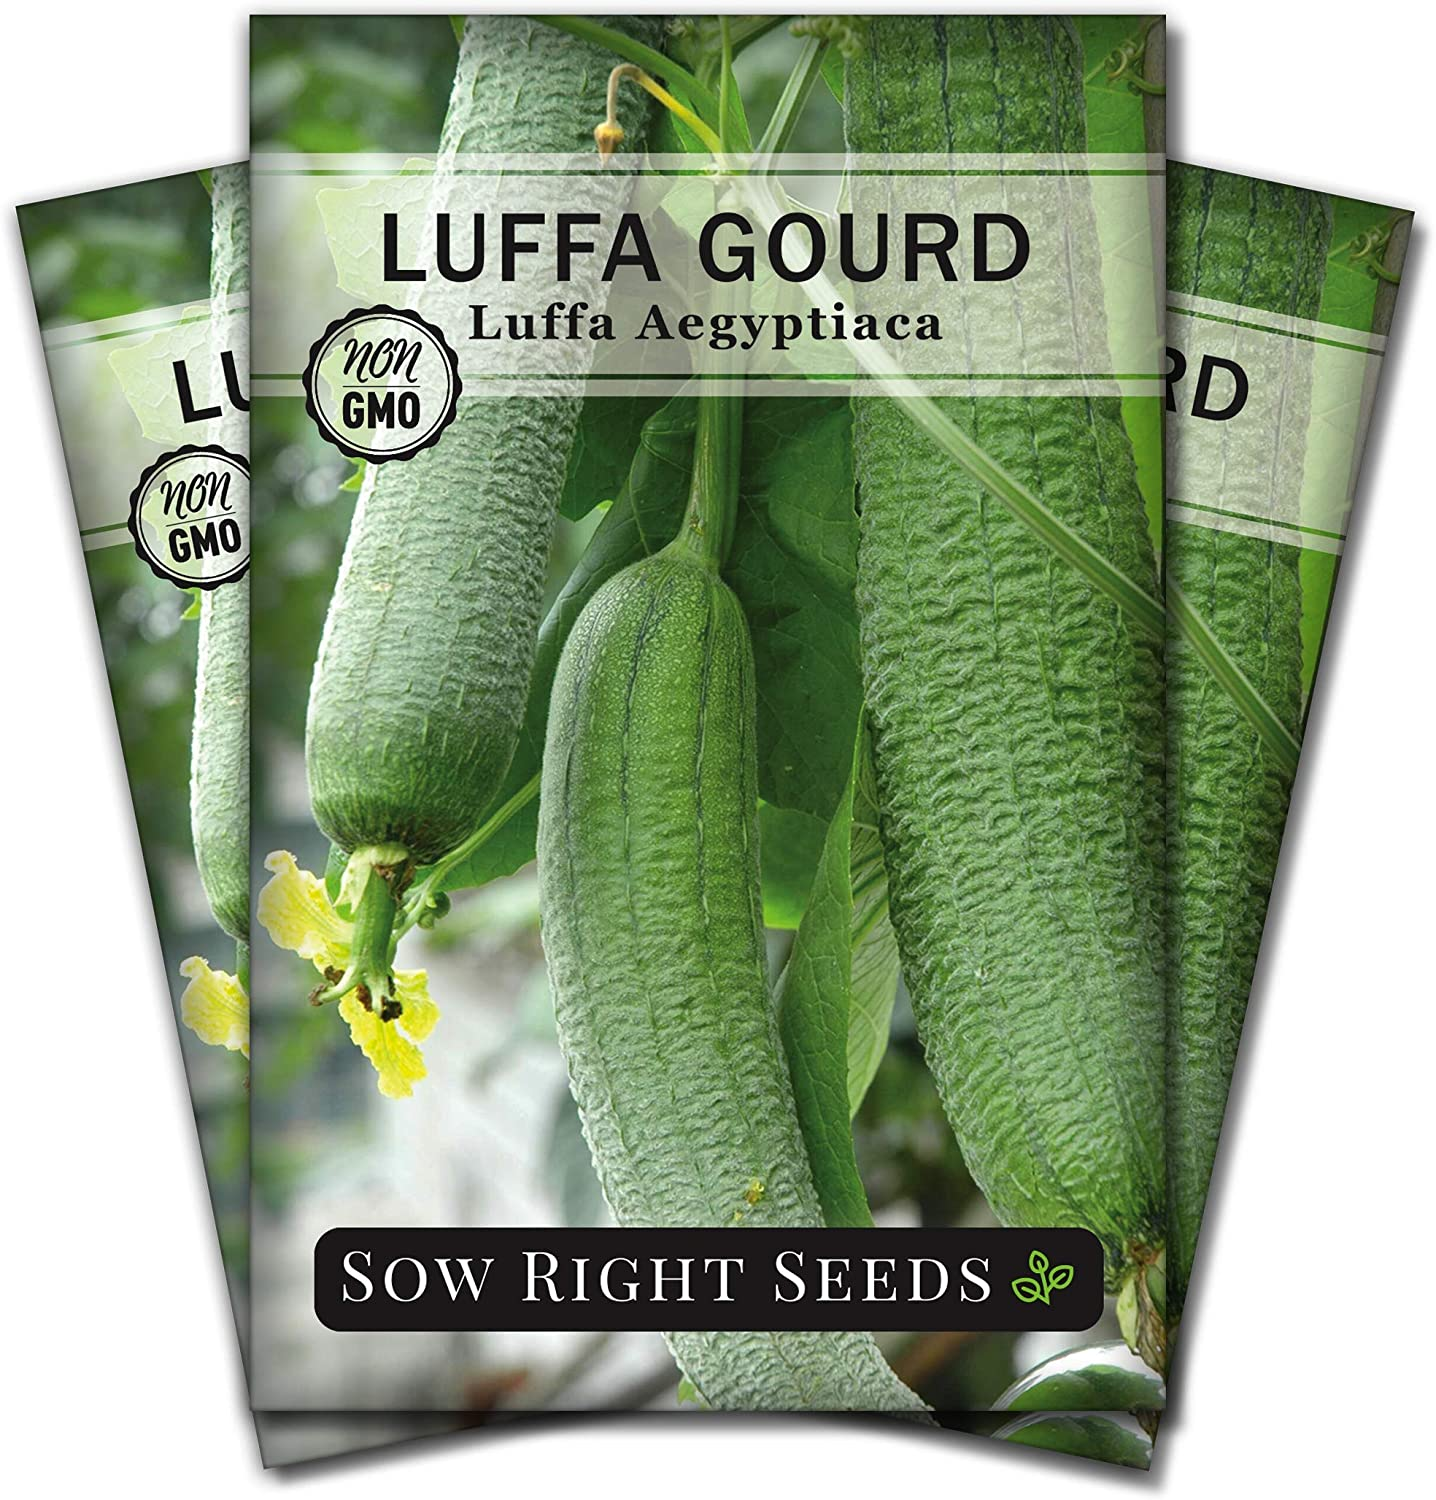 Sow Right Seeds - Luffa Gourd Seed for Planting - Non-GMO Heirloom Packet with Instructions to Plant a Home Vegetable Garden - Great Gardening Gift (3)